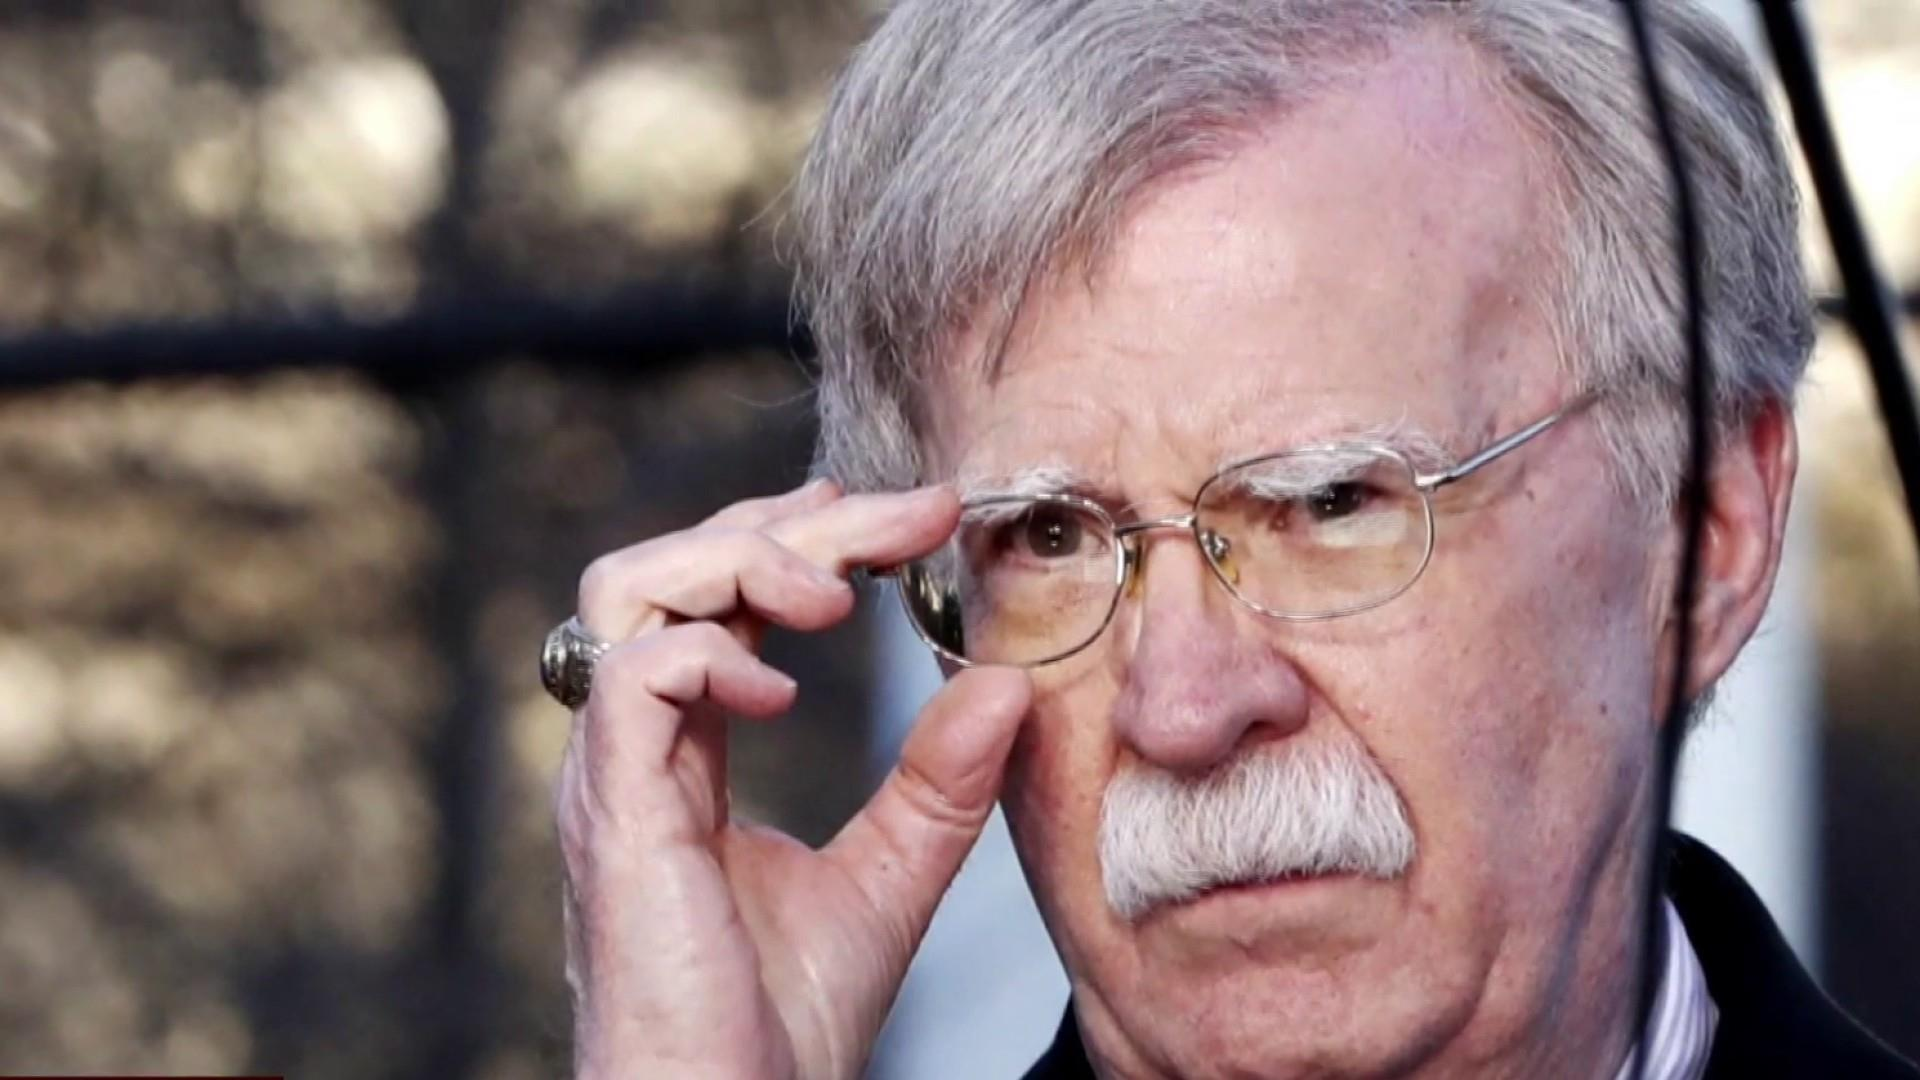 John Bolton holds 'highly unusual' meeting at CIA